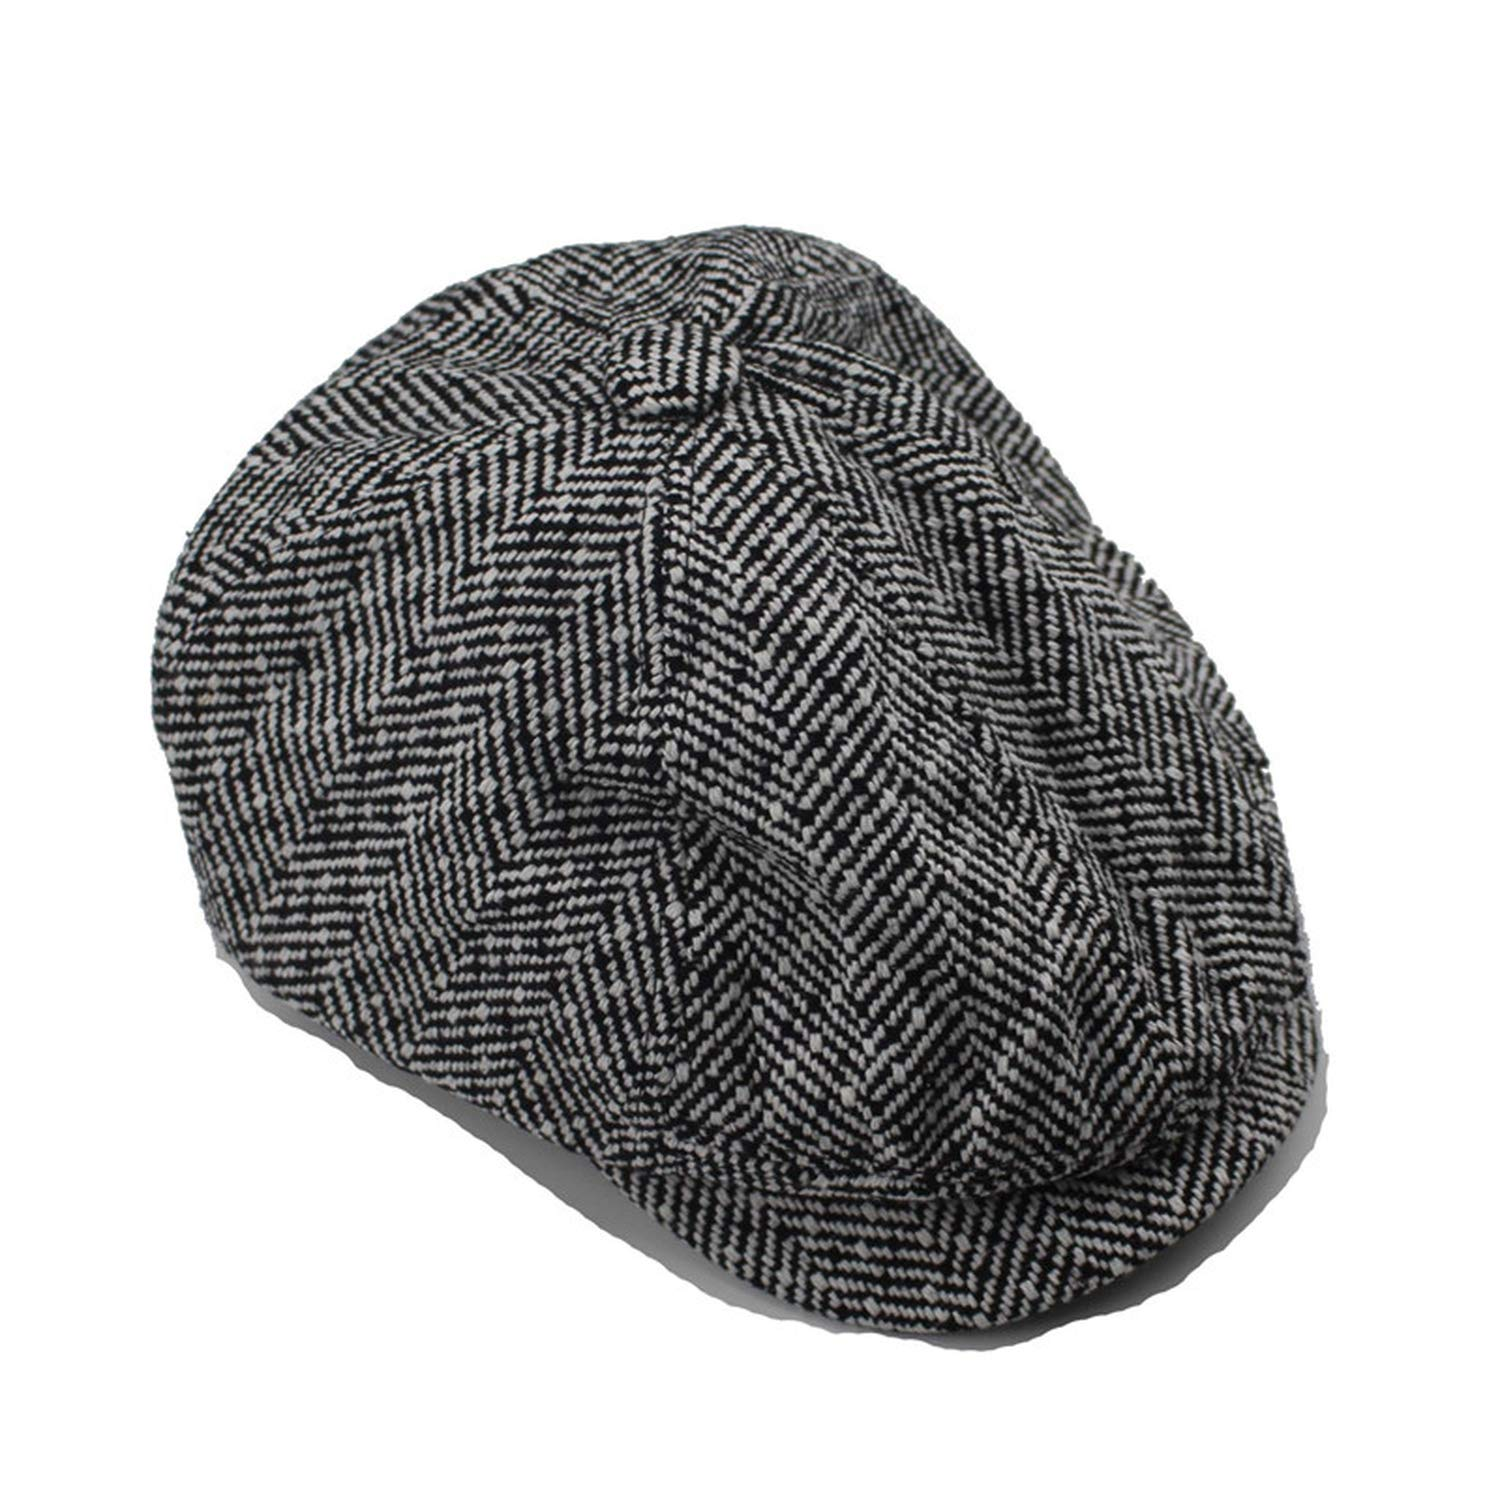 Mens Classic Herringbone Tweed Wool Blend Newsboy Ivy Hat Men and Women Hats Gorras Planas Octagonal Cap